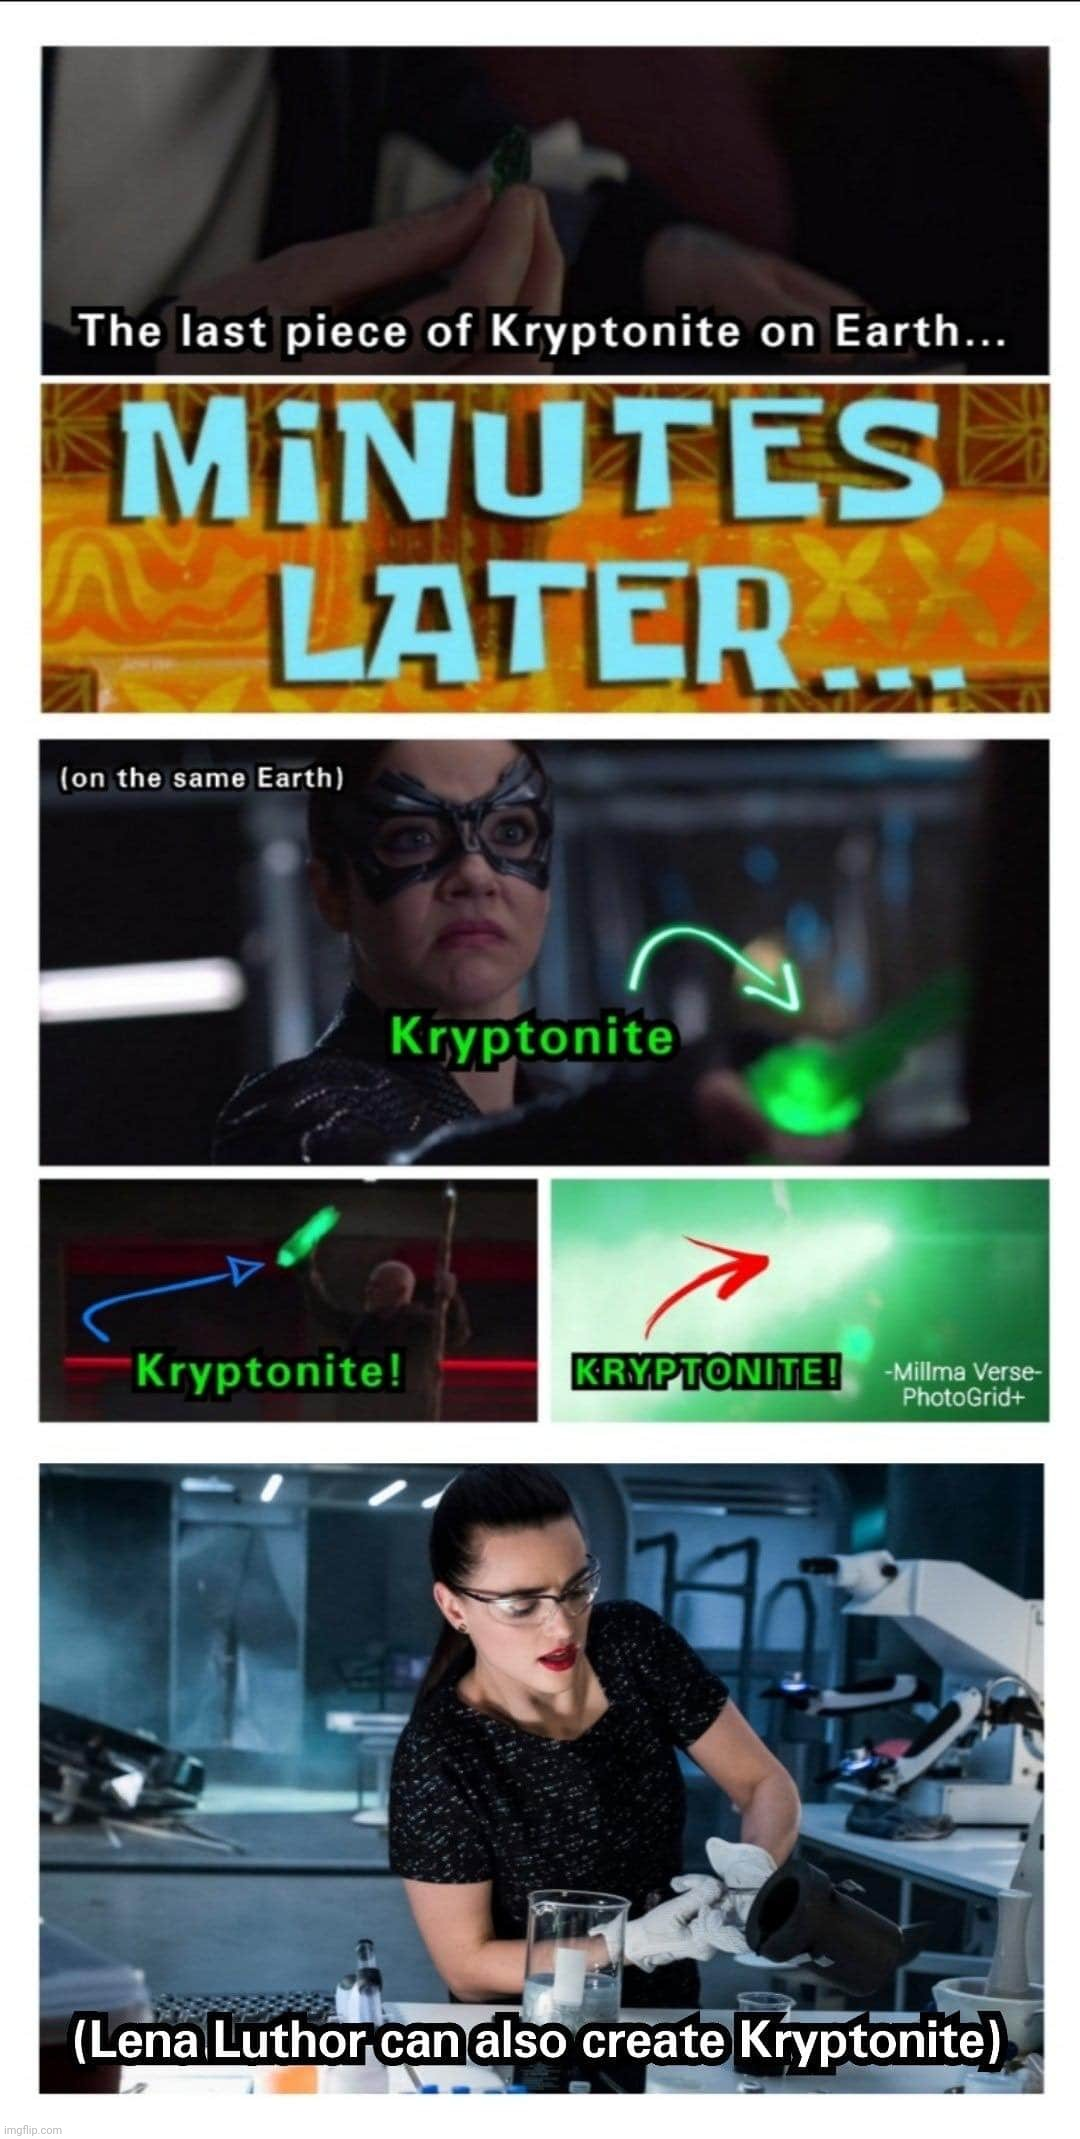 Kryptonite | image tagged in supergirl,superman,lex luthor,kryptonite,lena luthor,arrowverse | made w/ Imgflip meme maker